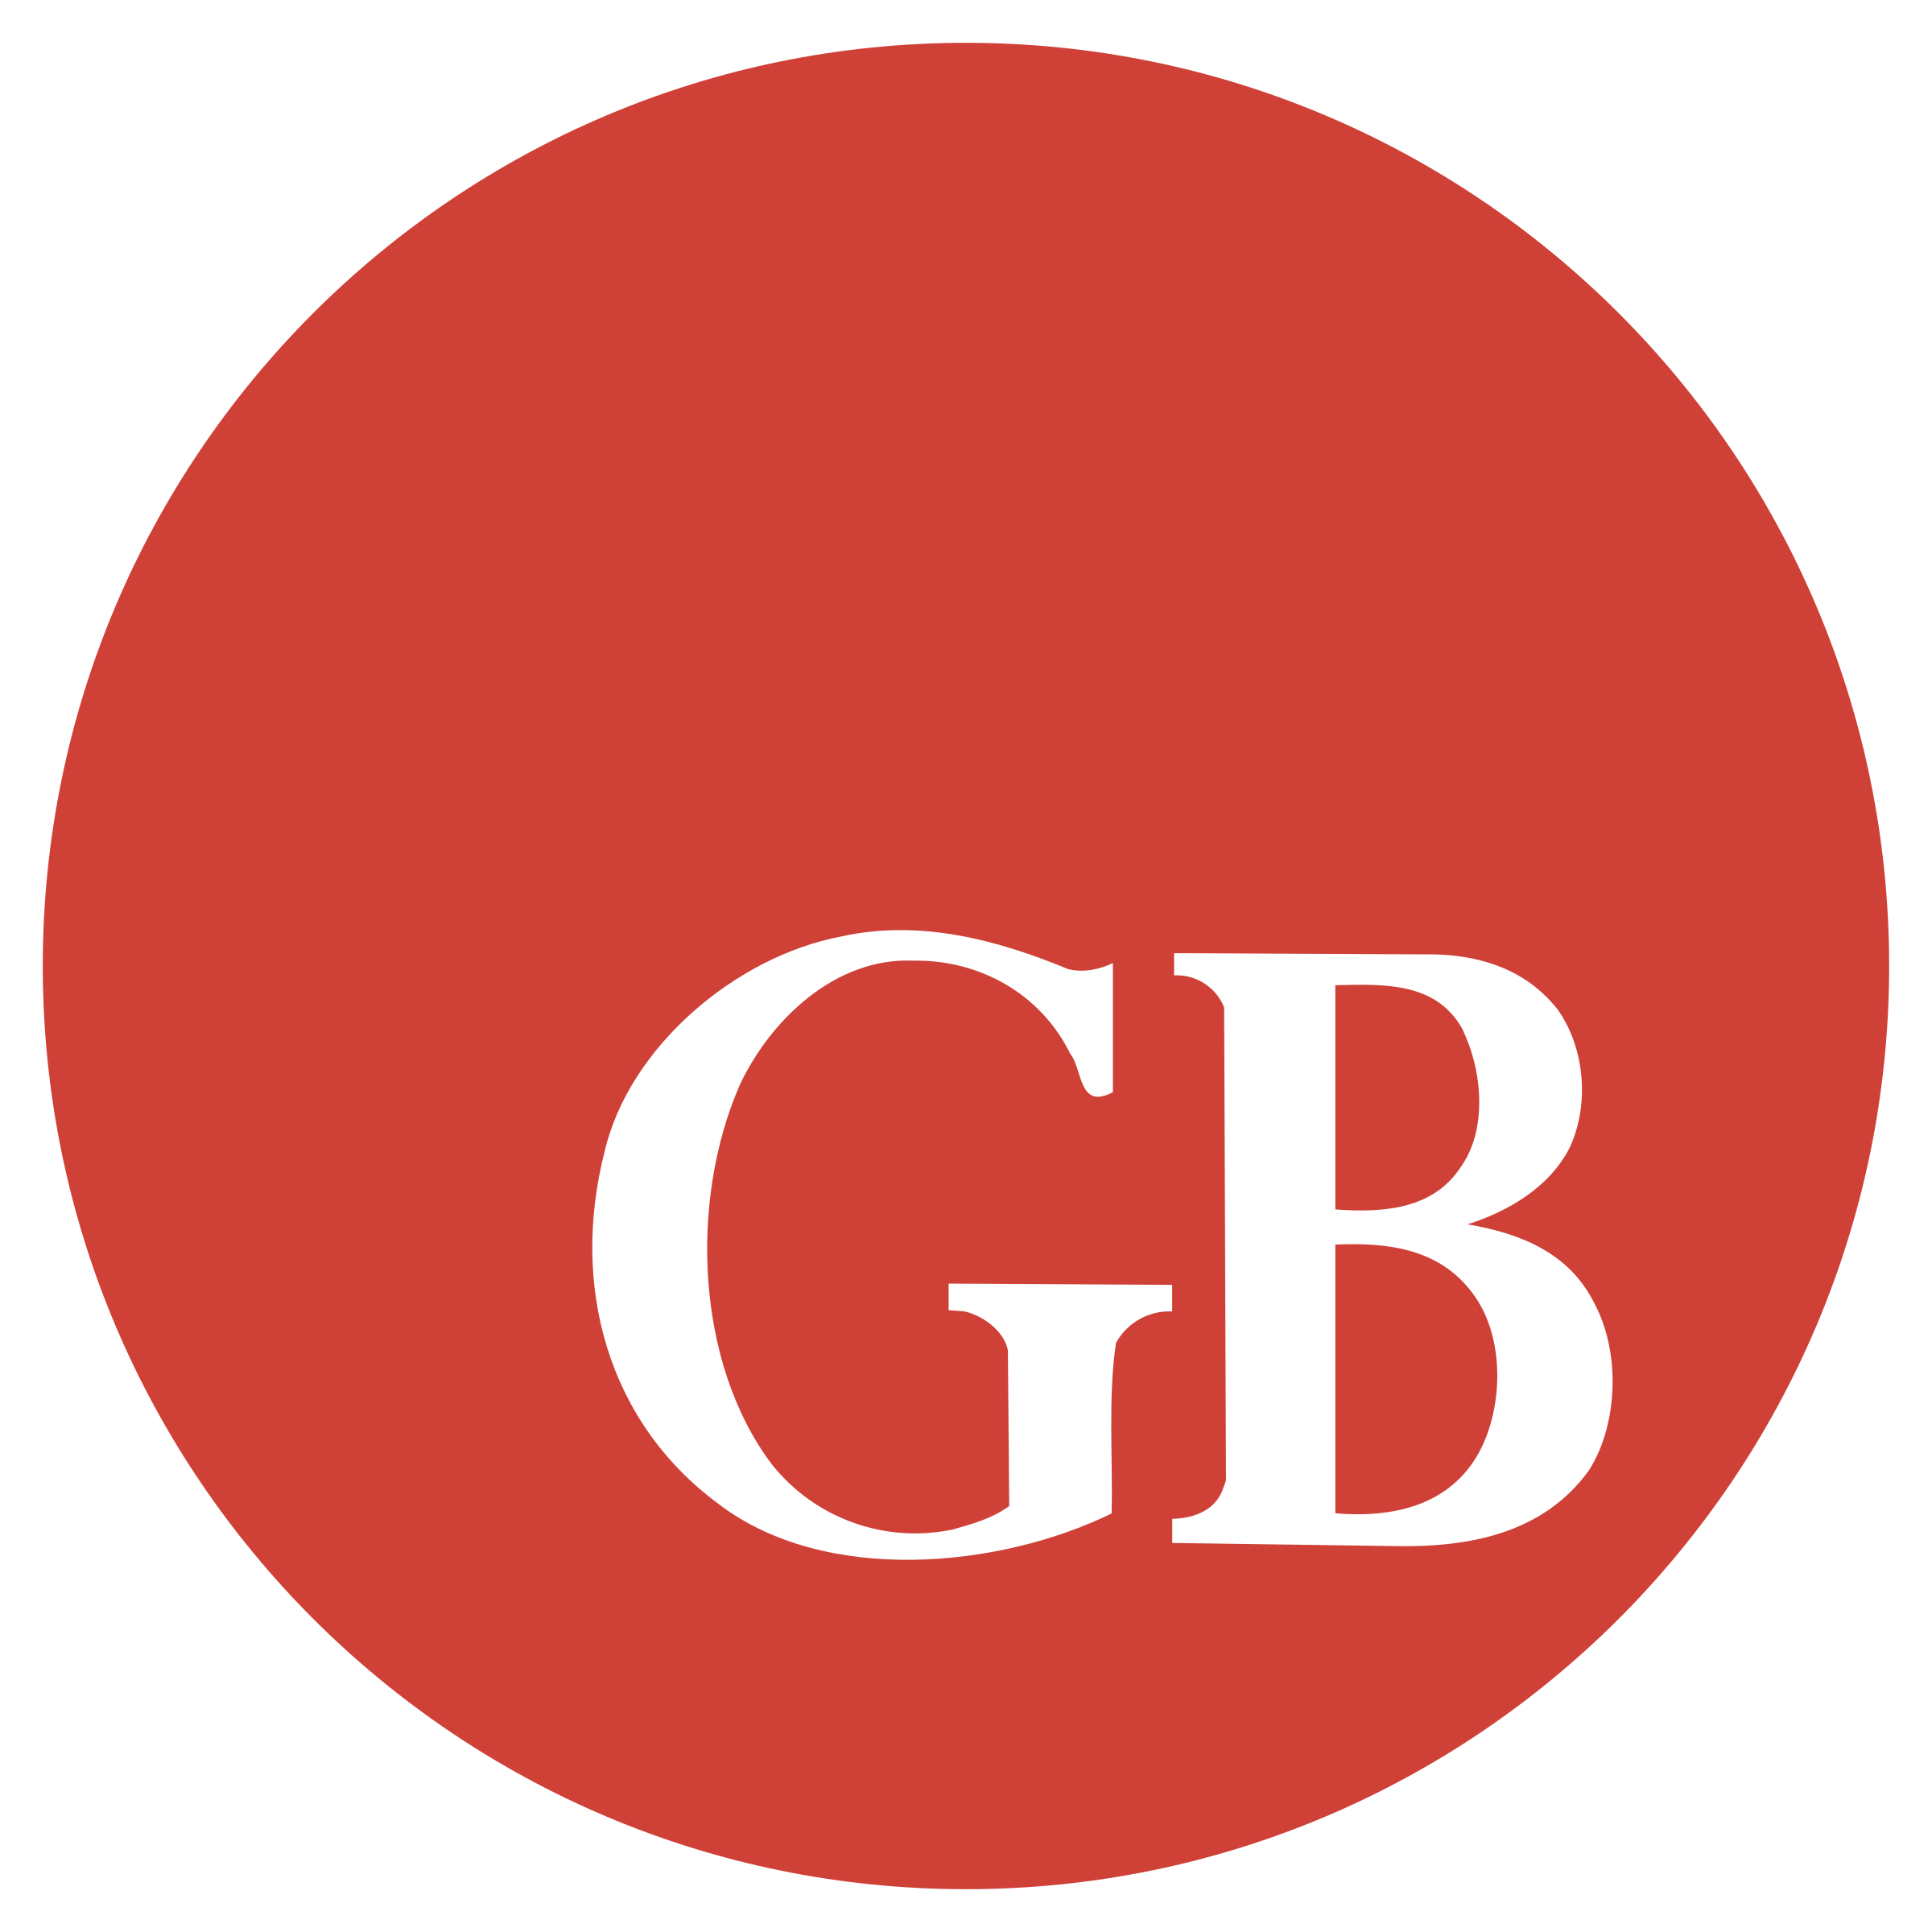 GB Logo PNG Transparent & SVG Vector.